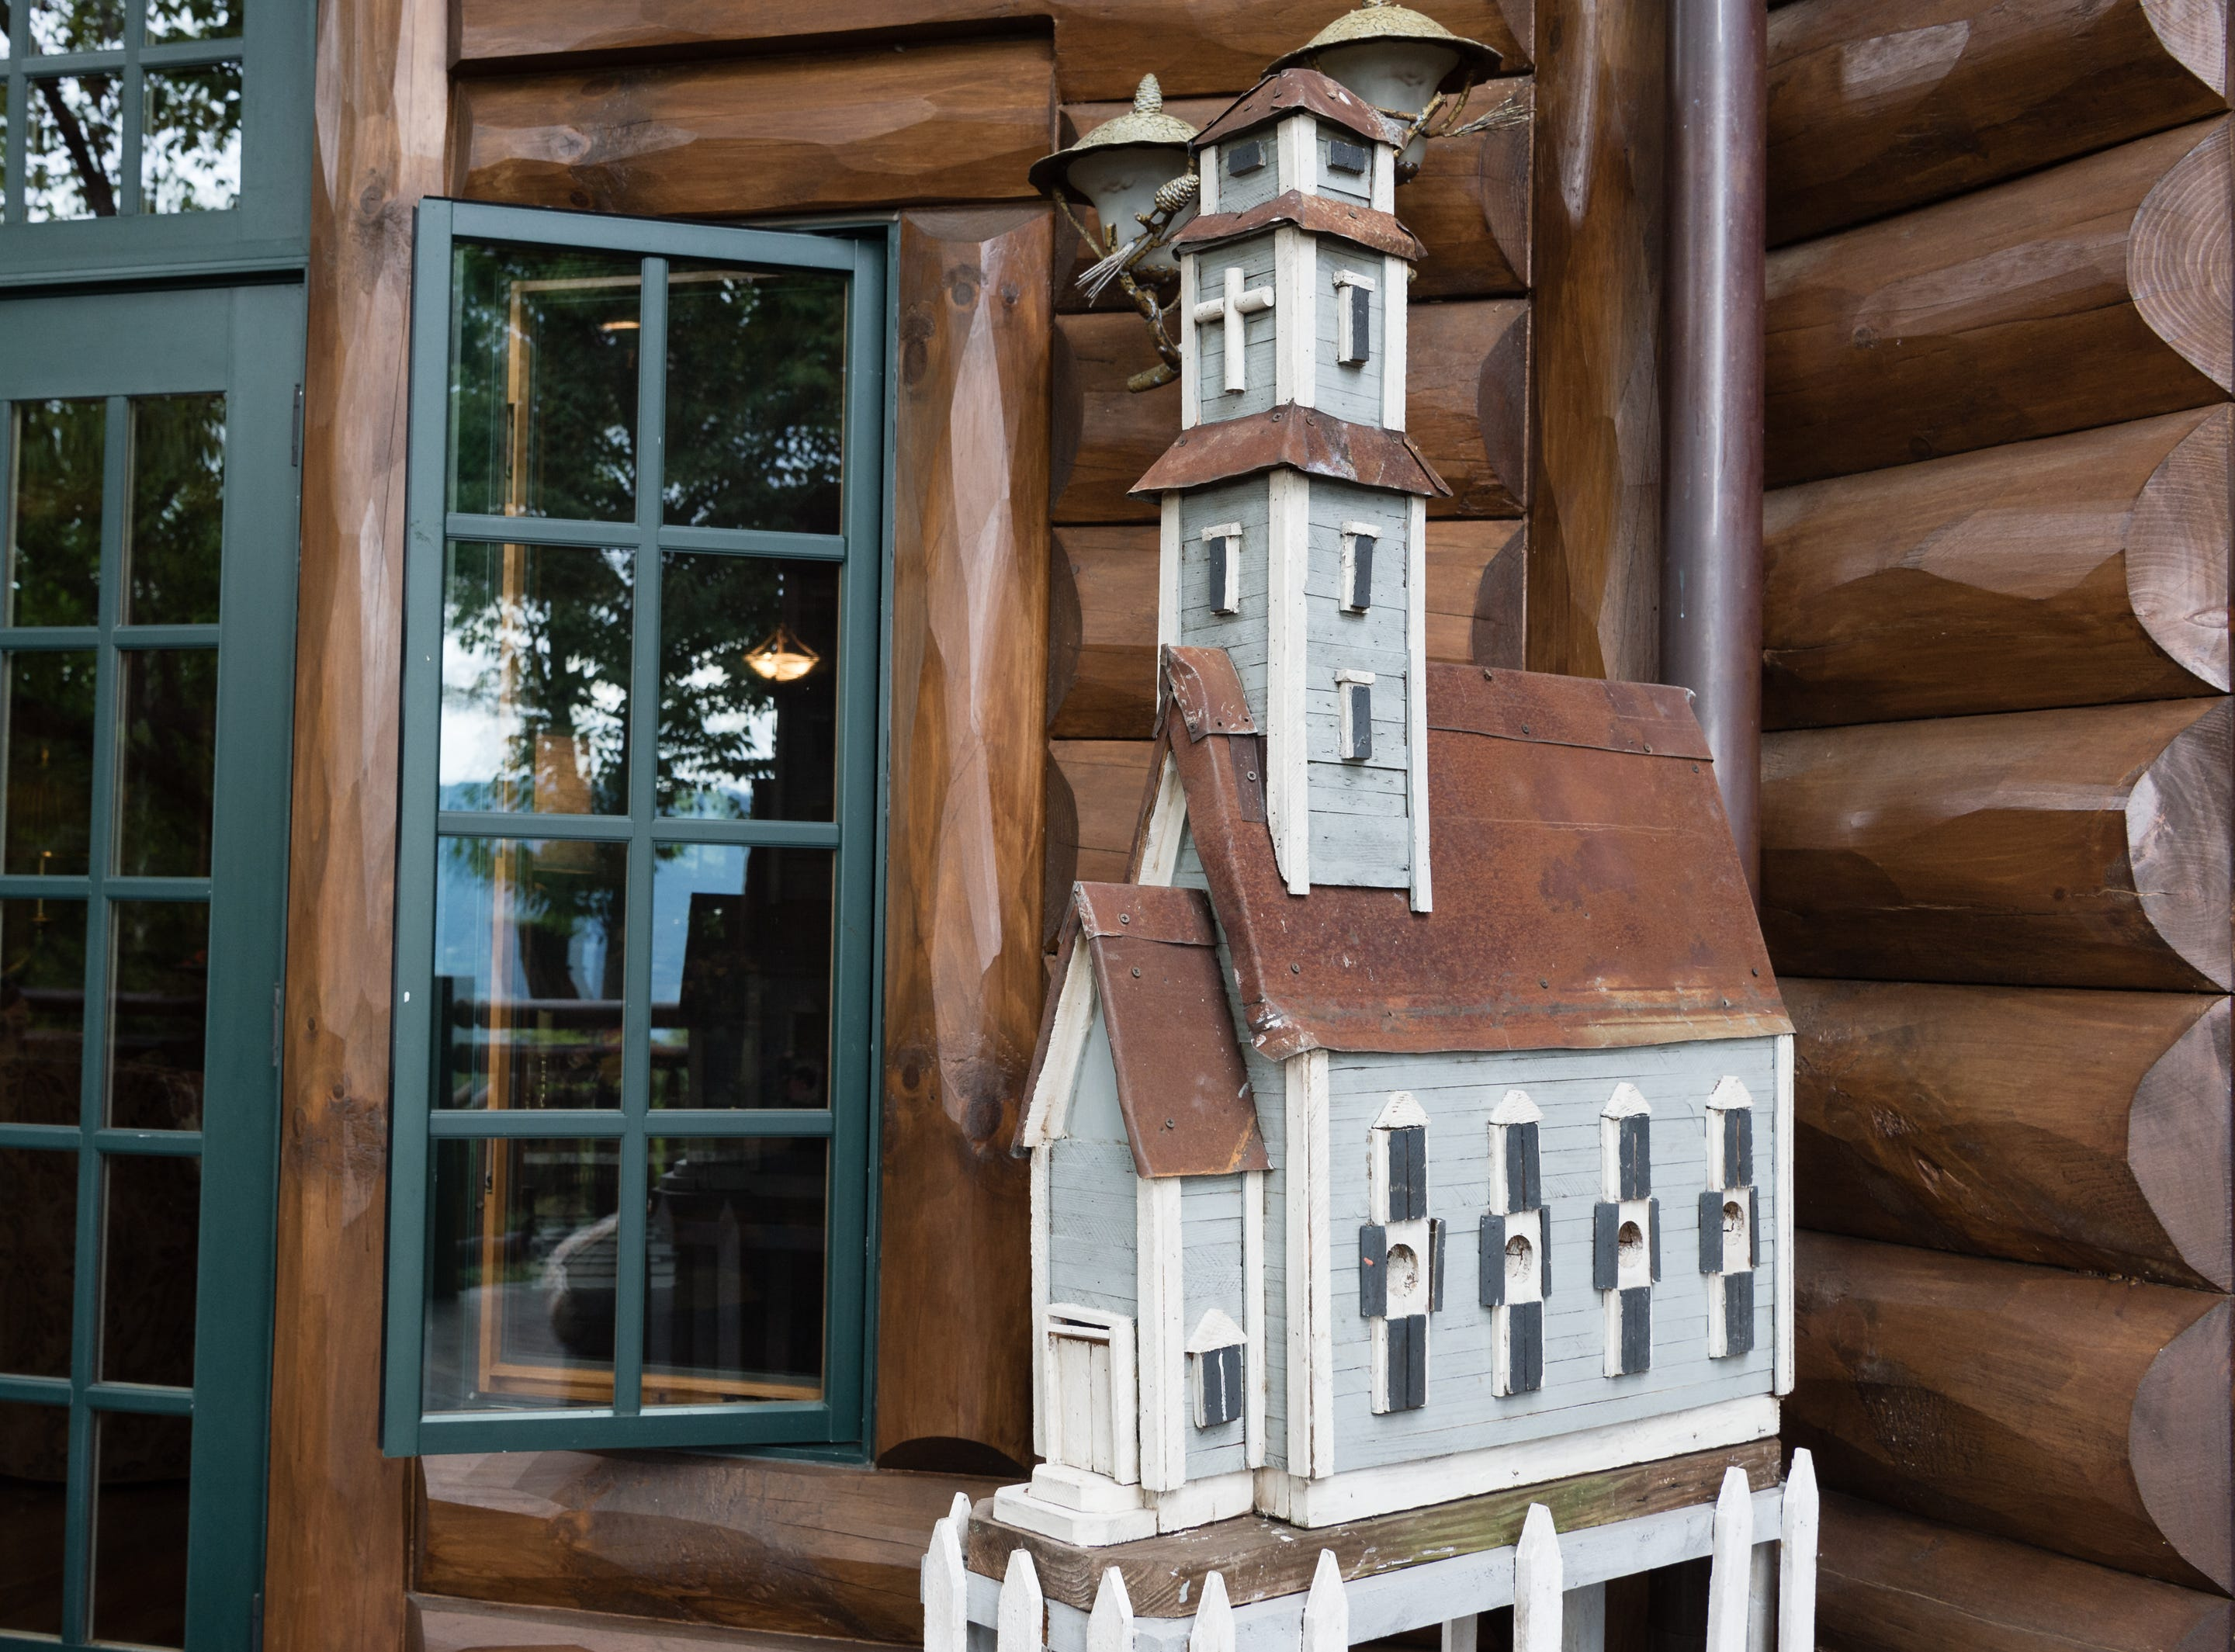 A wooden miniature church on the deck of Dan and Belle Fangmeyer's log cabin in Waynesville.